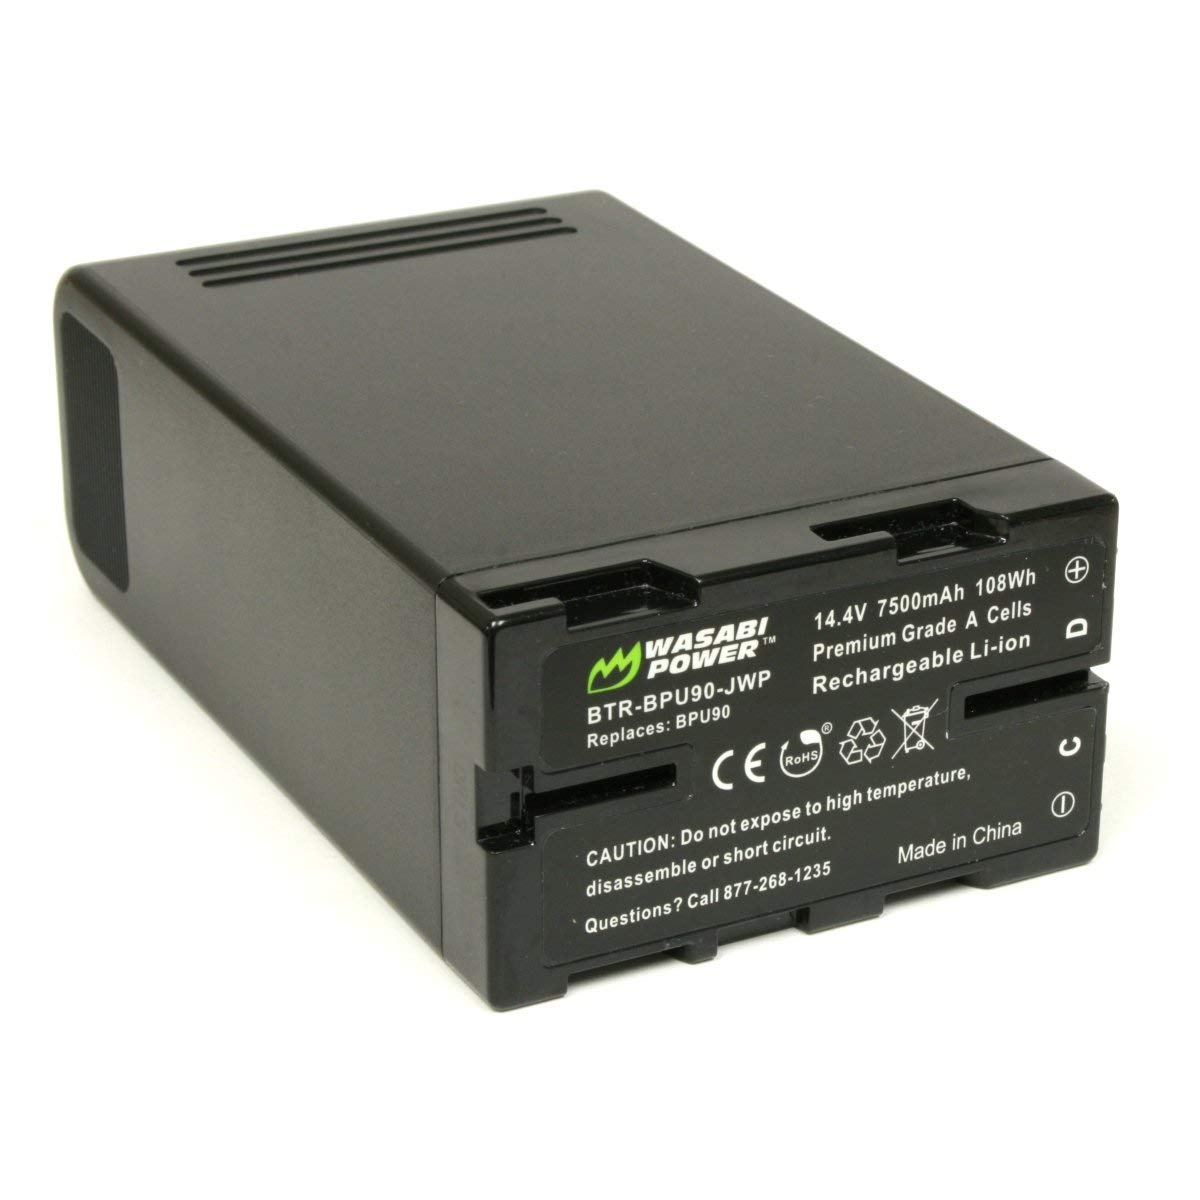 Wasabi Power Battery for Sony BP-U90 (14.4V, 7500mAh, 108Wh) by Wasabi Power